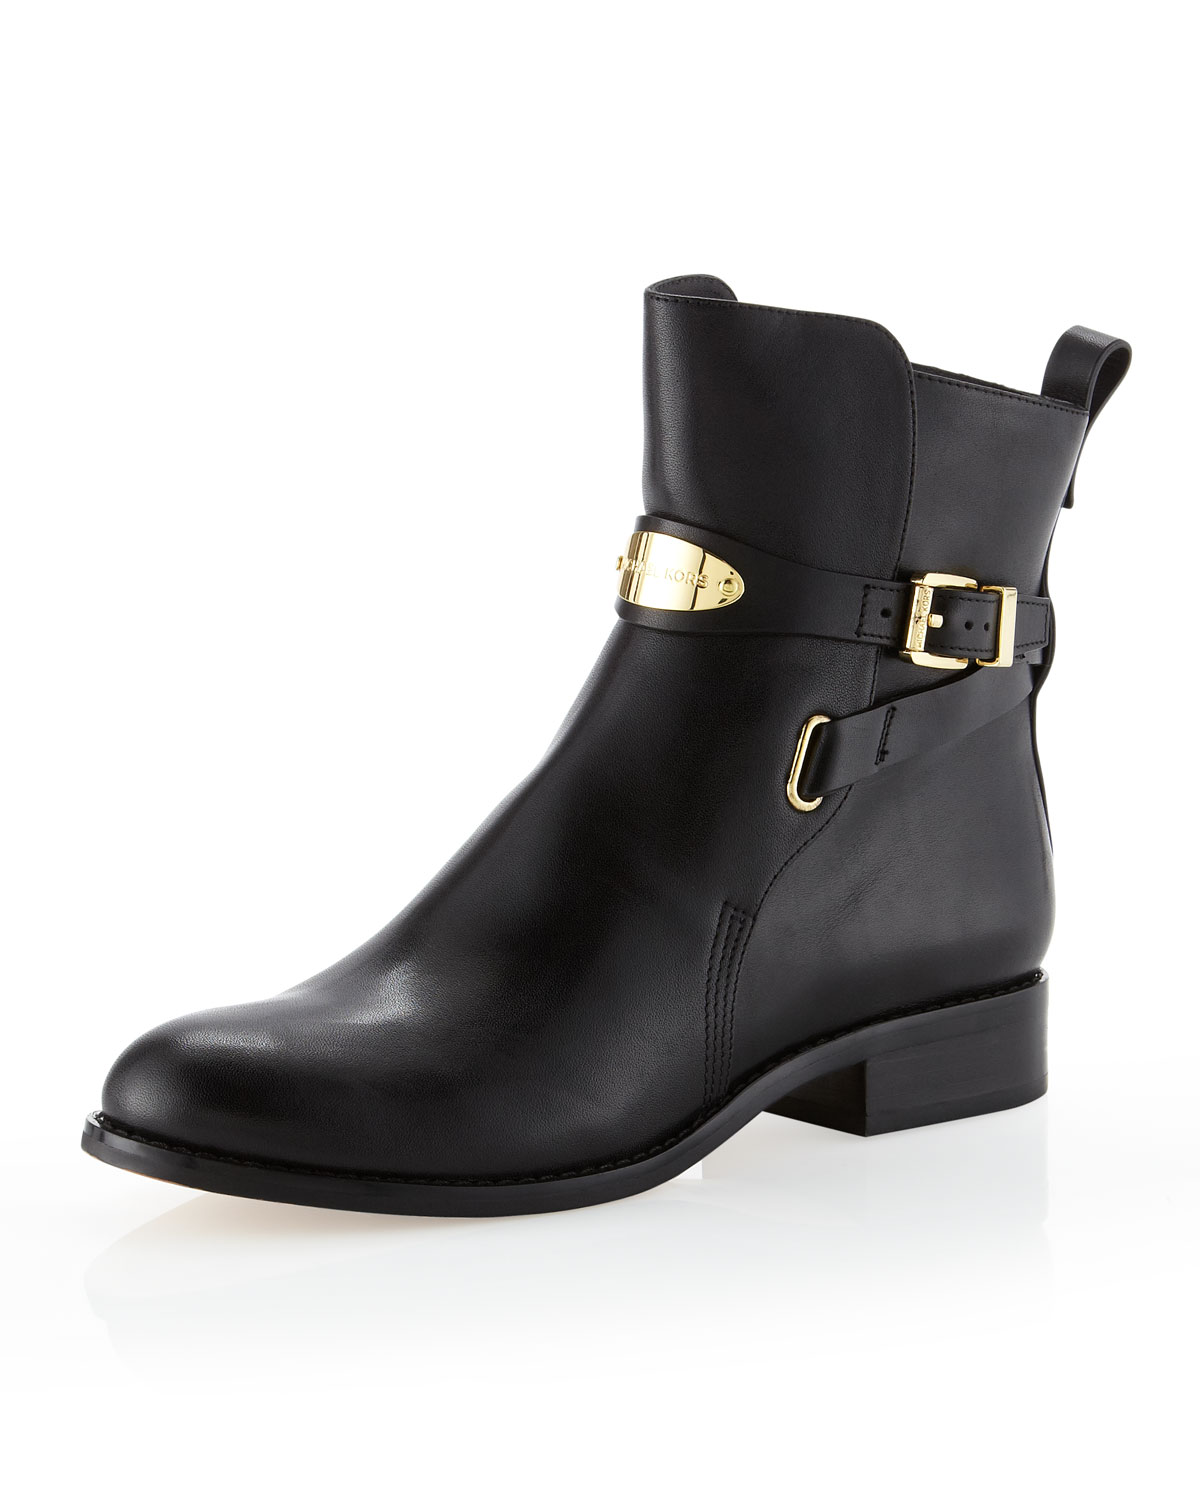 michael kors arley iconic sexy gold logo plate flat ankle boots ebay. Black Bedroom Furniture Sets. Home Design Ideas